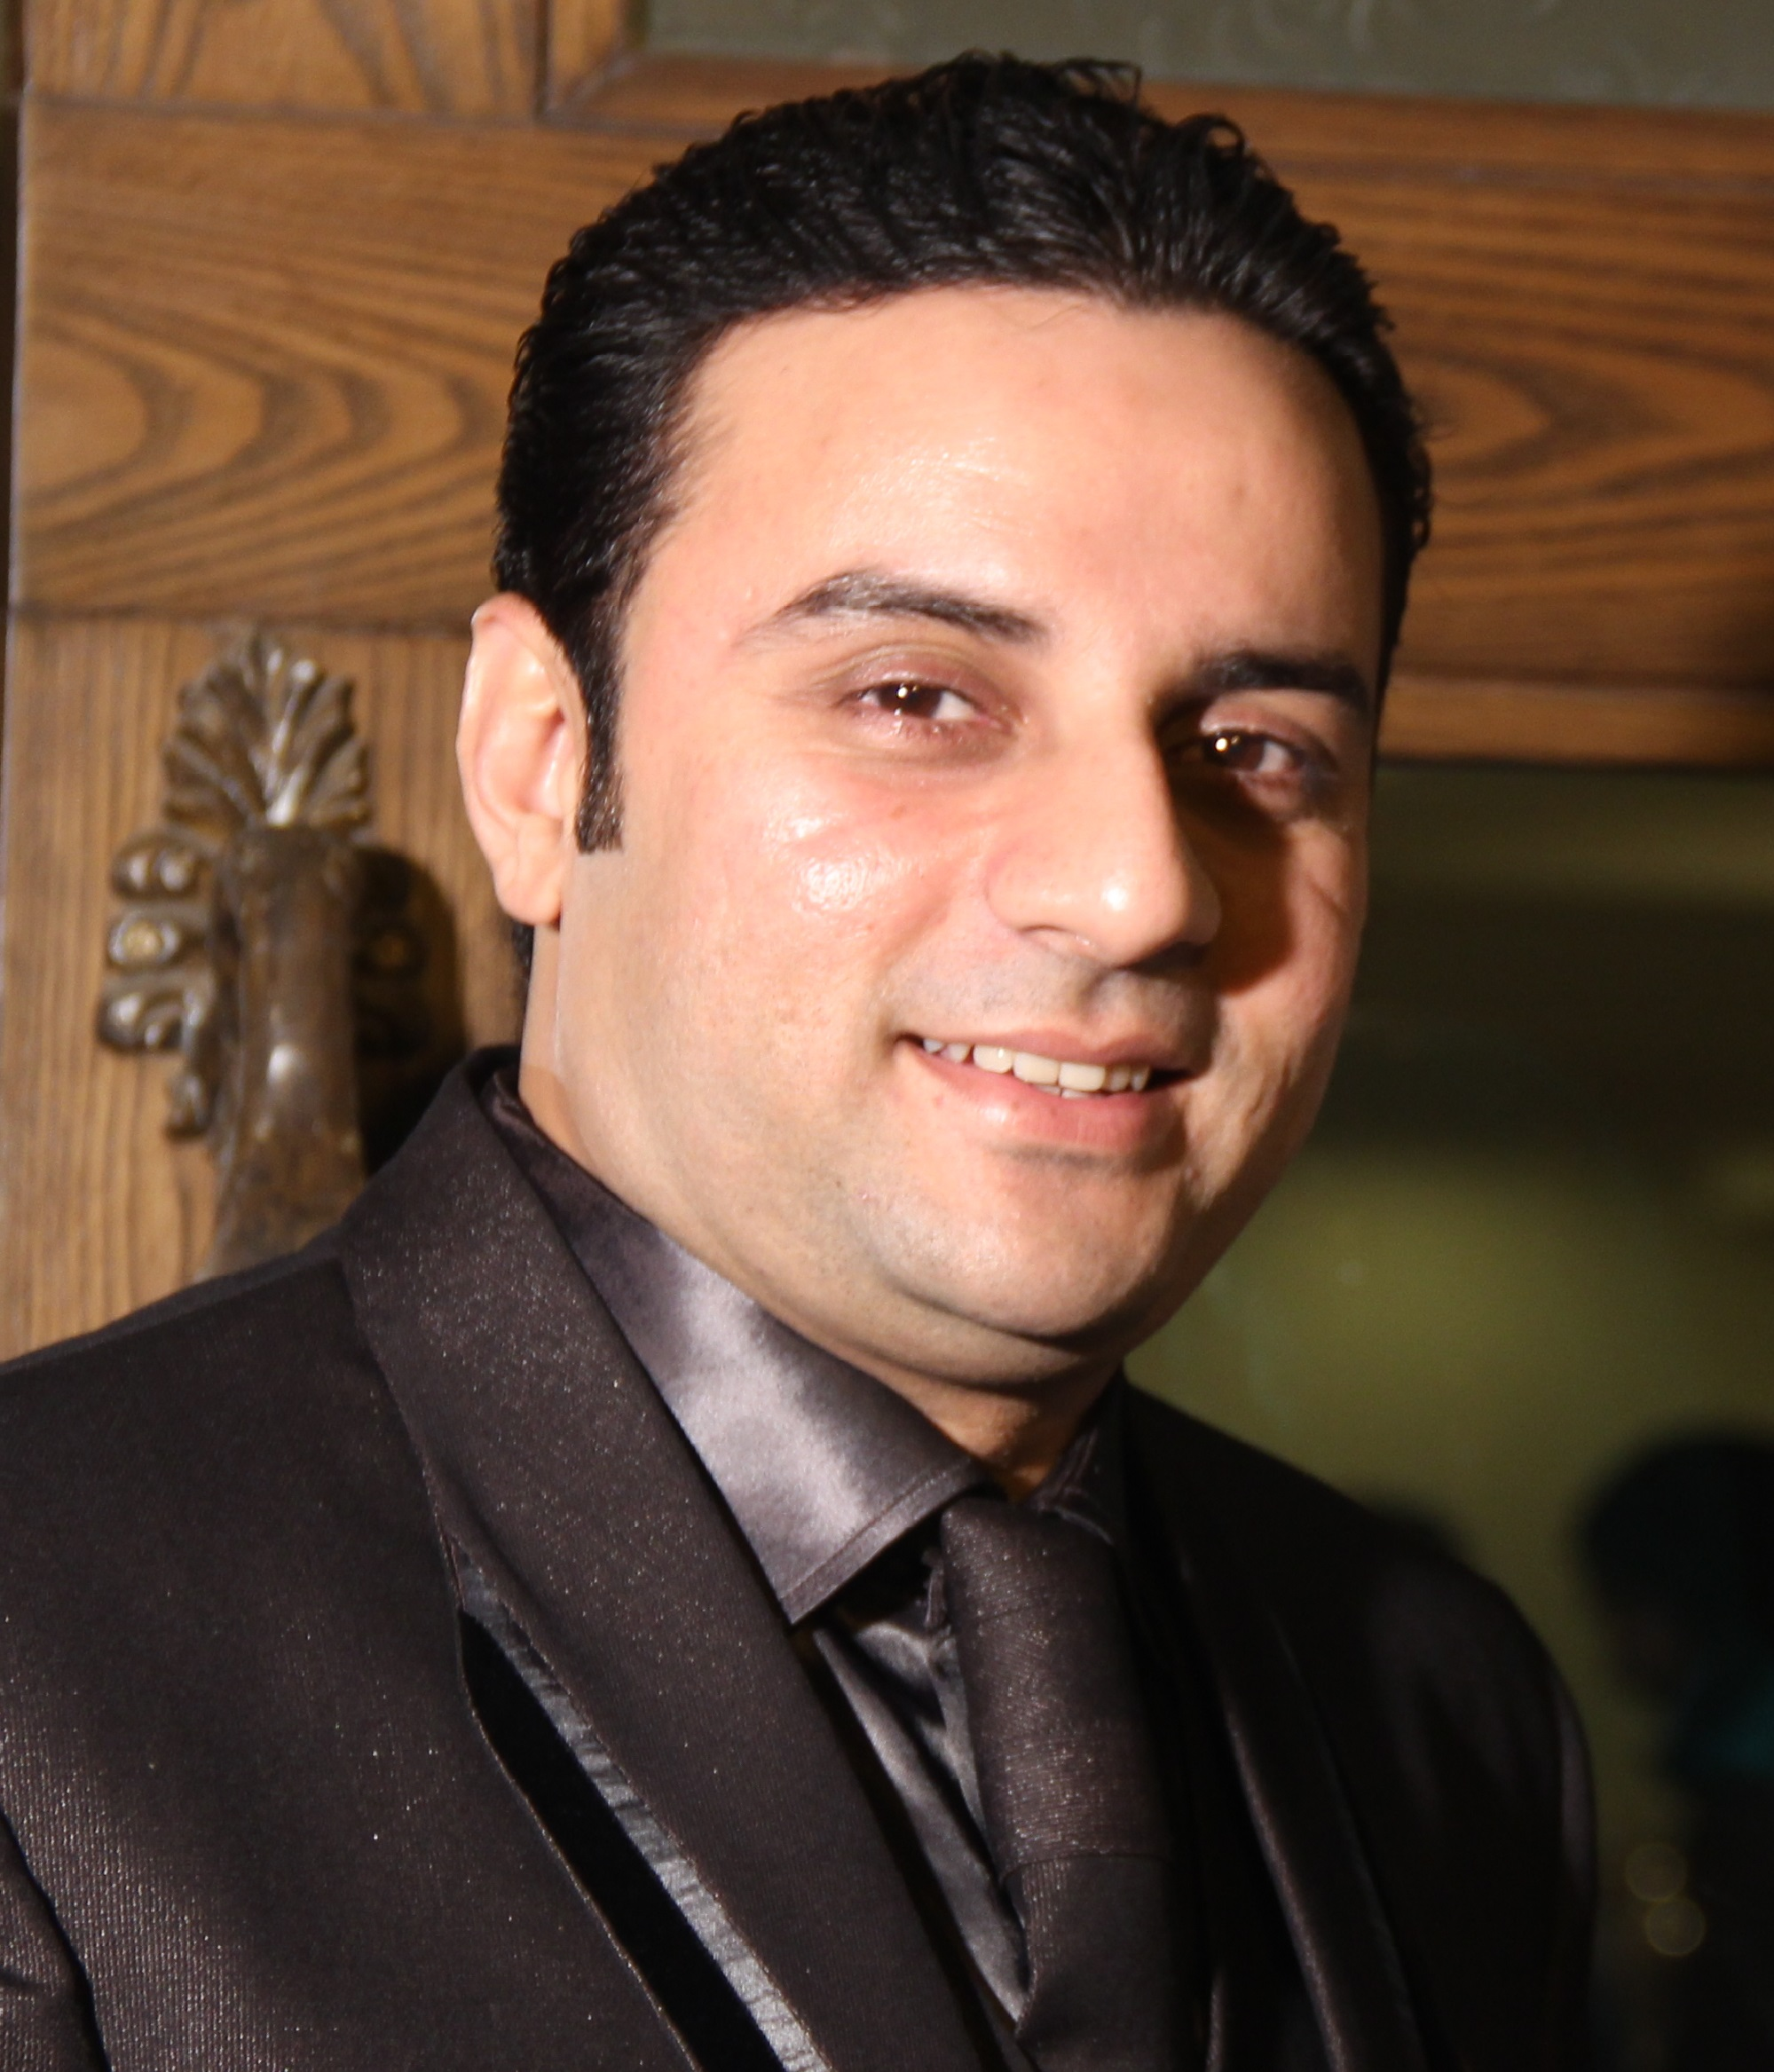 Mr. Afnan Ali - Group Head of Information Technology